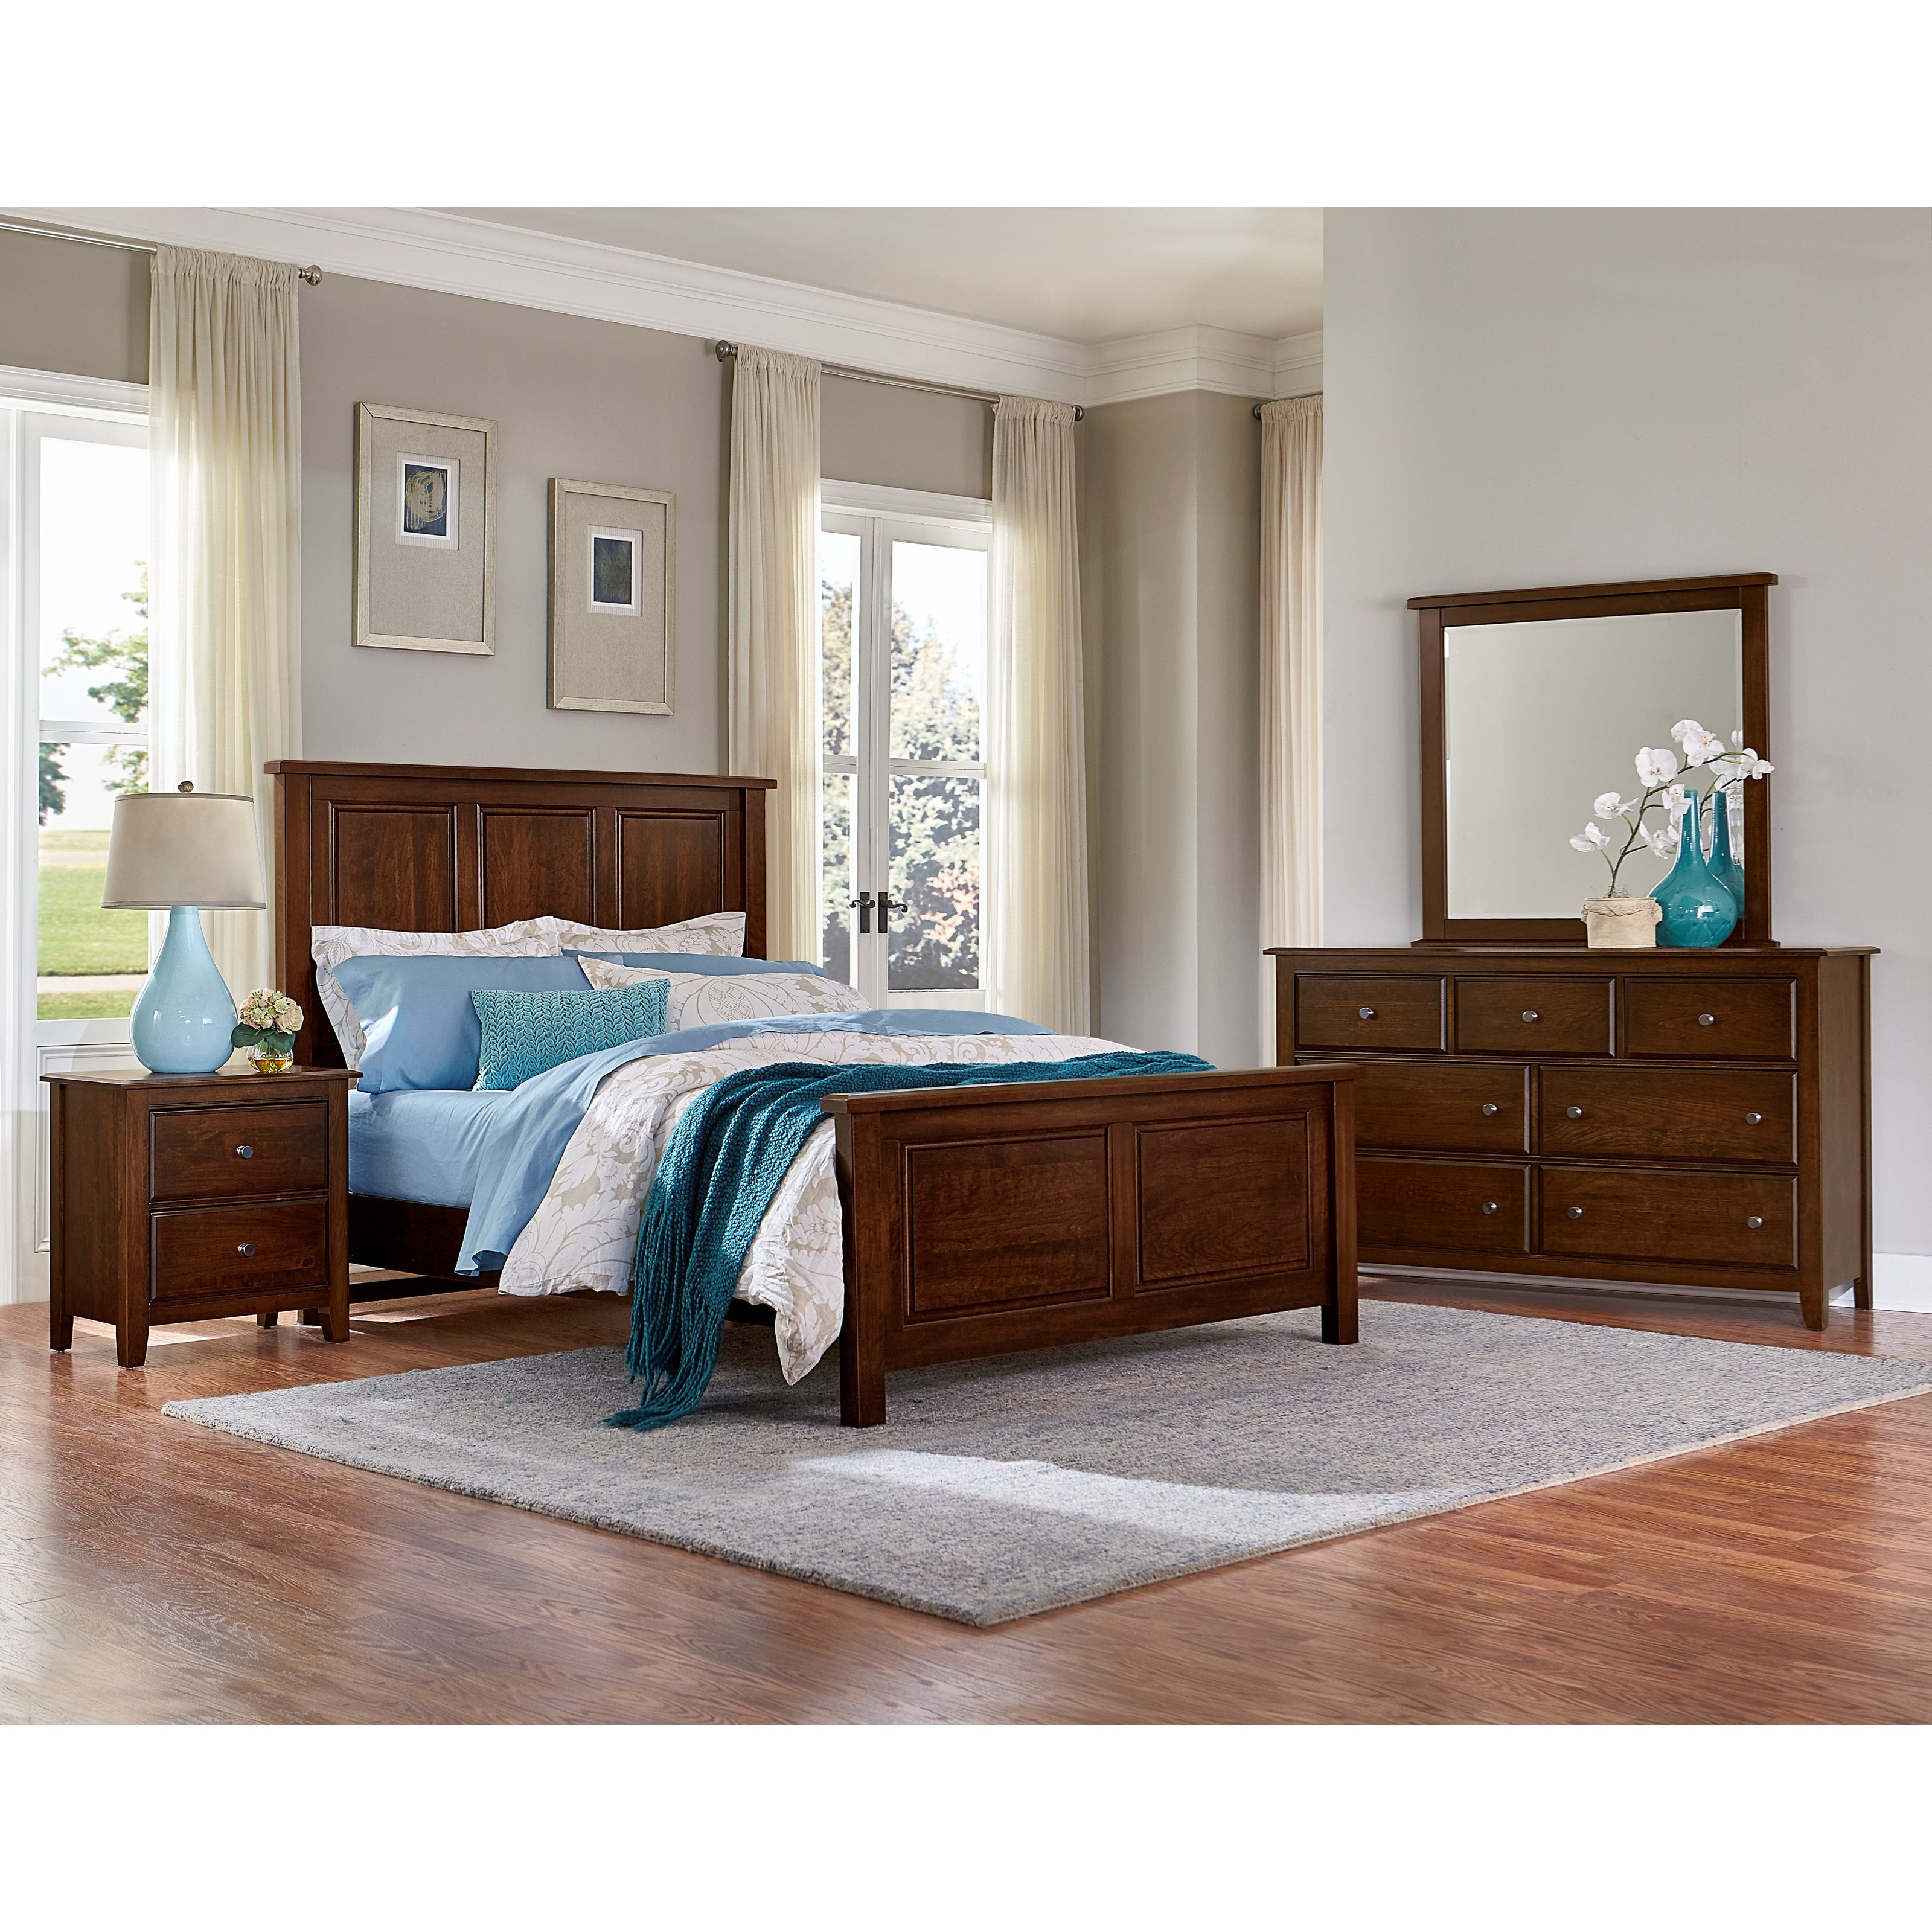 Artisan Post Artisan Choices Queen Bedroom Group Hudson 39 S Furniture Bedroom Groups